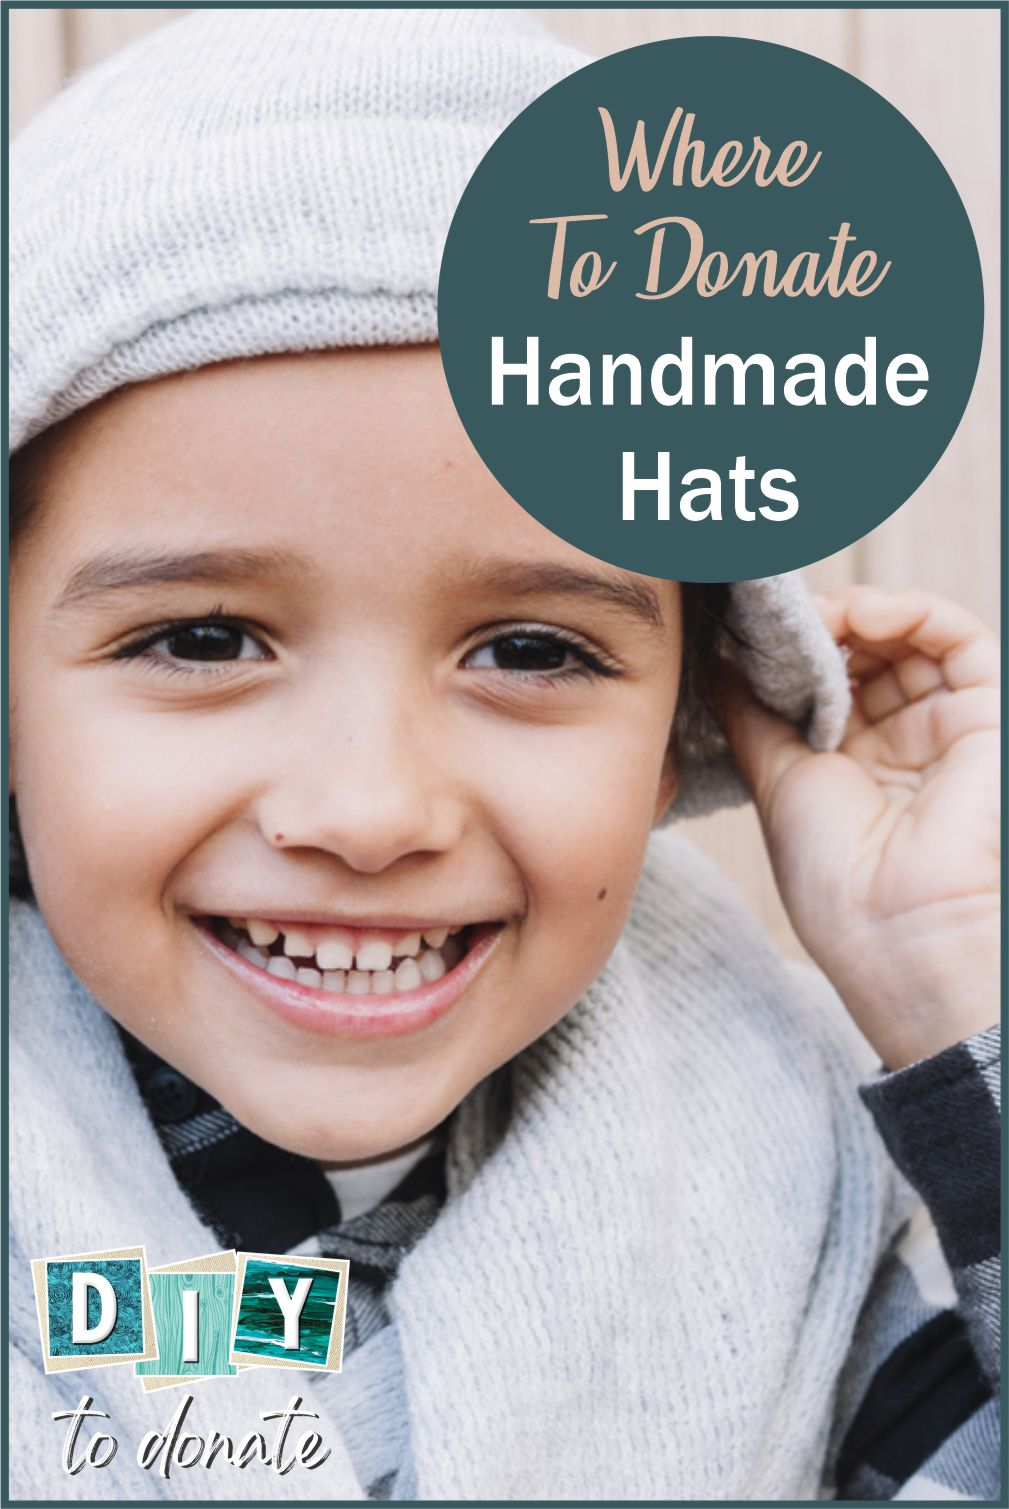 Your hat donations are welcomed by many organizations. We've rounded up the best ones to make it easy for you to choose. #diytodonate #diy #diyhats #donatehats #community #communityservice #giveback #girlscoutservice #boyscoutservice #girlscouts #boyscouts